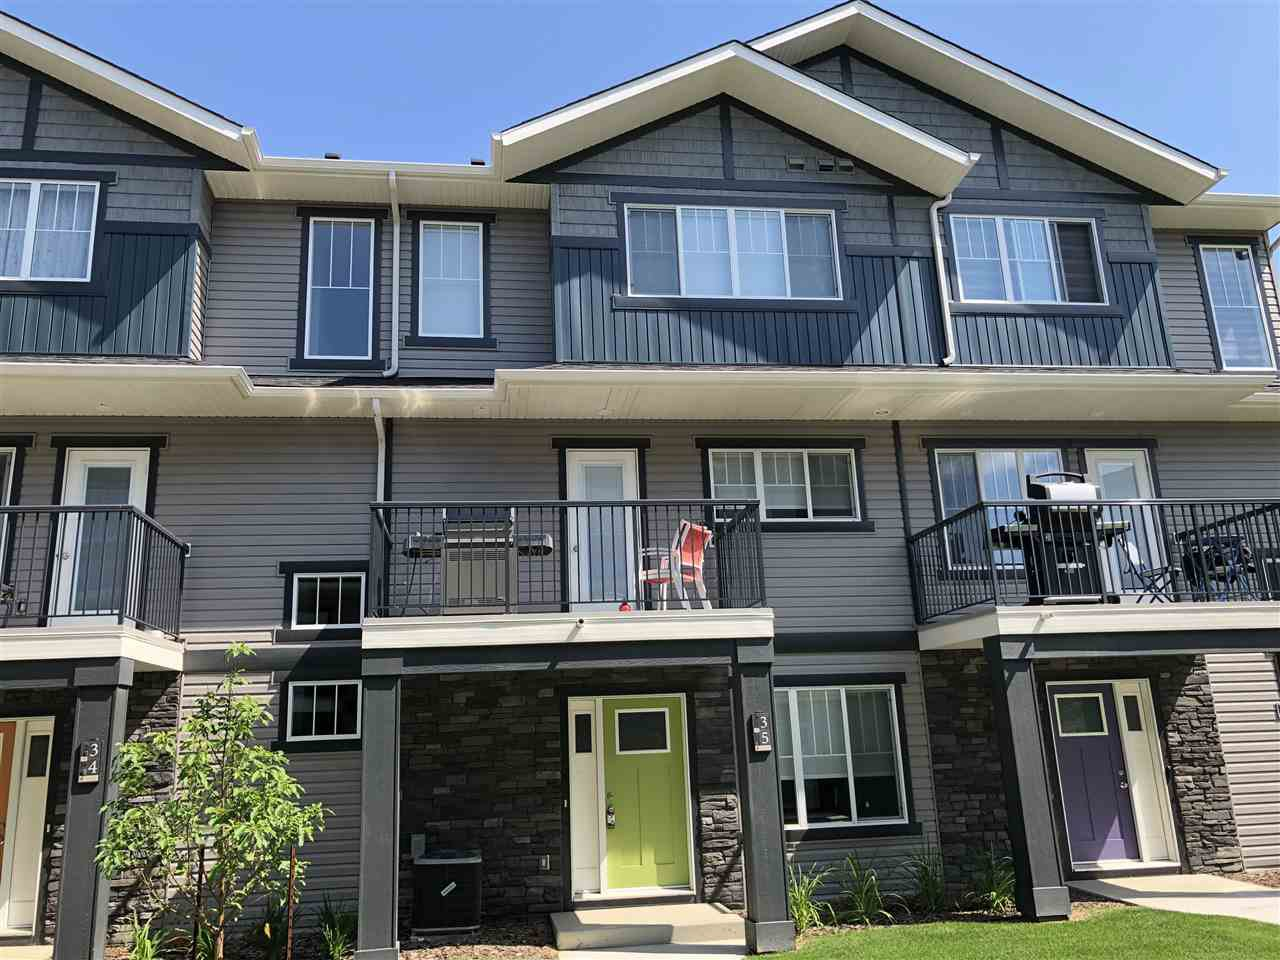 Main Photo: 14 12815 Cumberland Road in Edmonton: Zone 27 Townhouse for sale : MLS®# E4213452